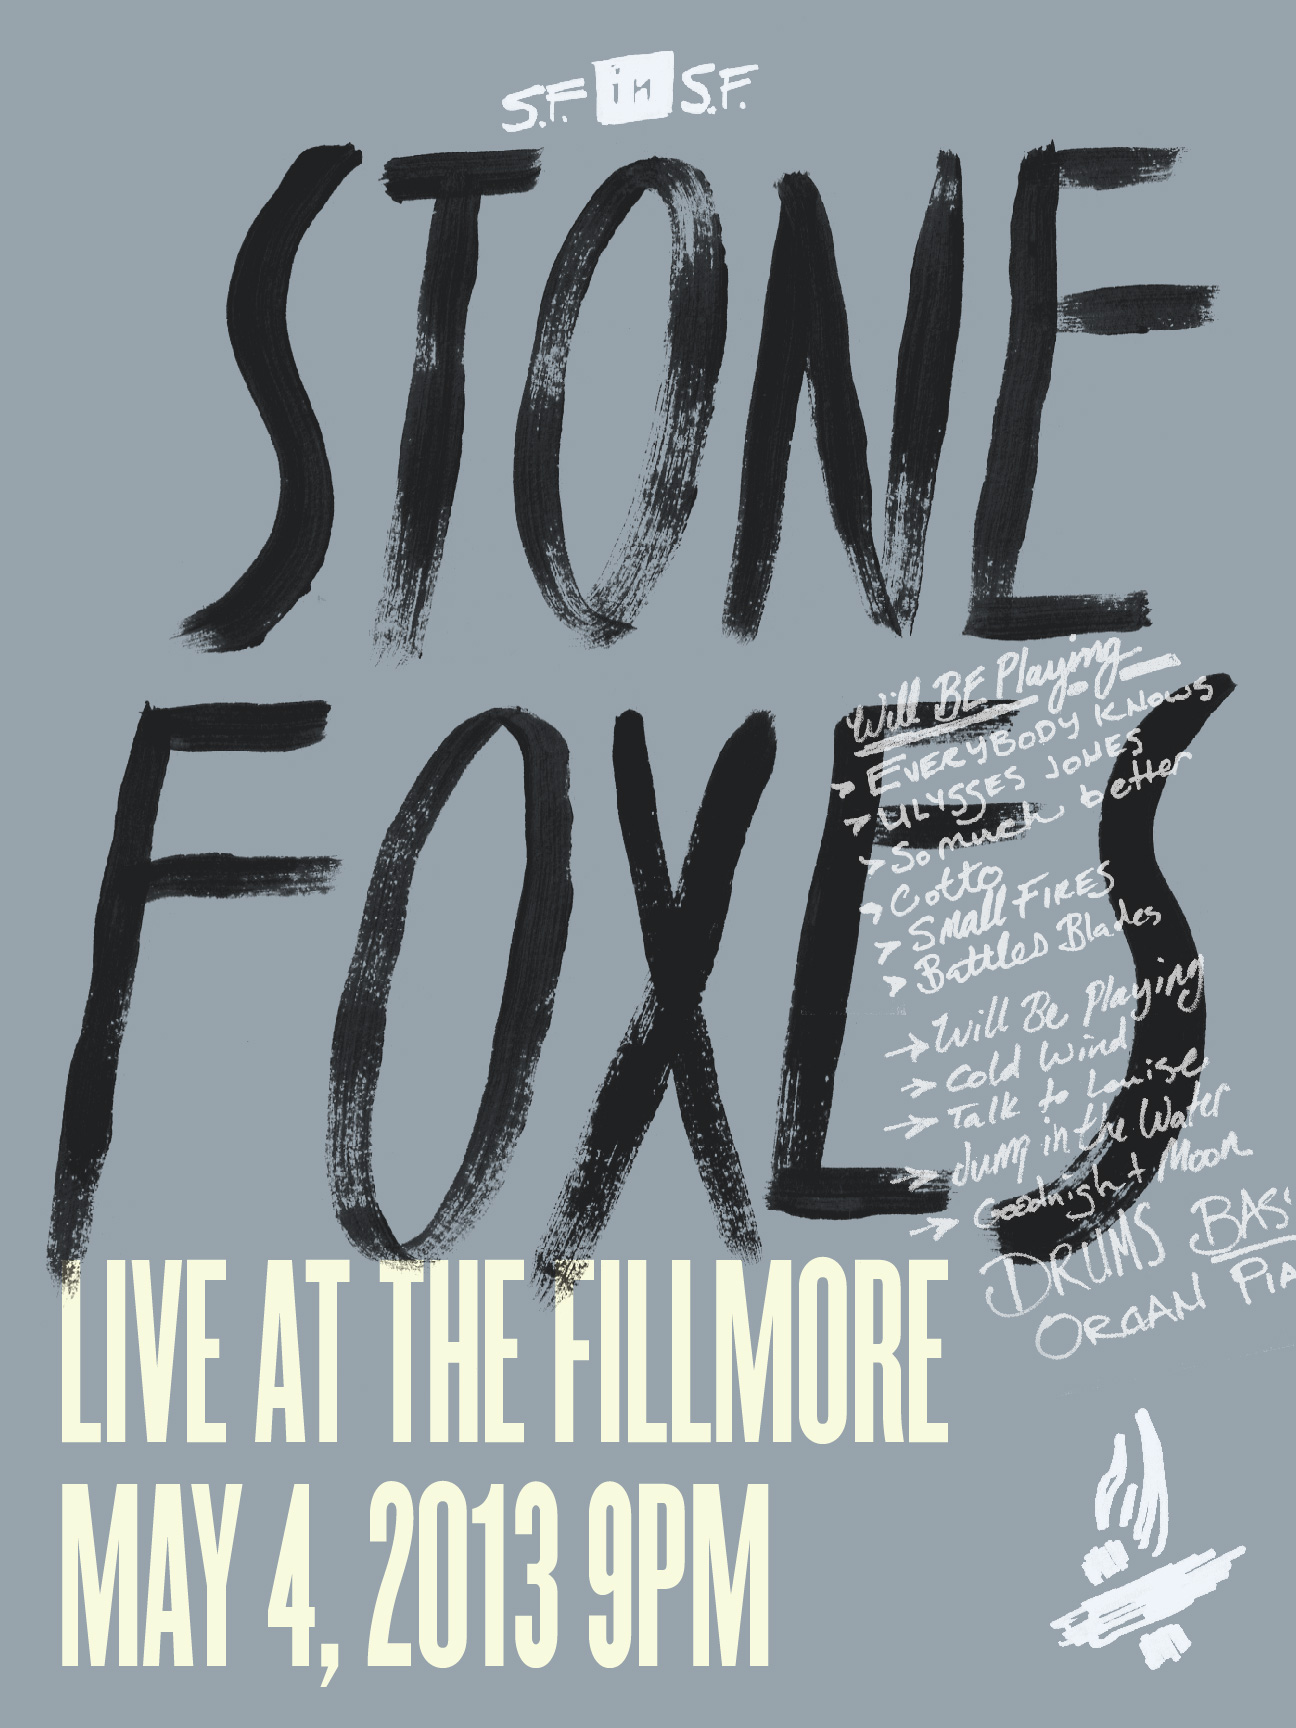 The Stone Foxes - A Homecoming Poster - image 16 - student project